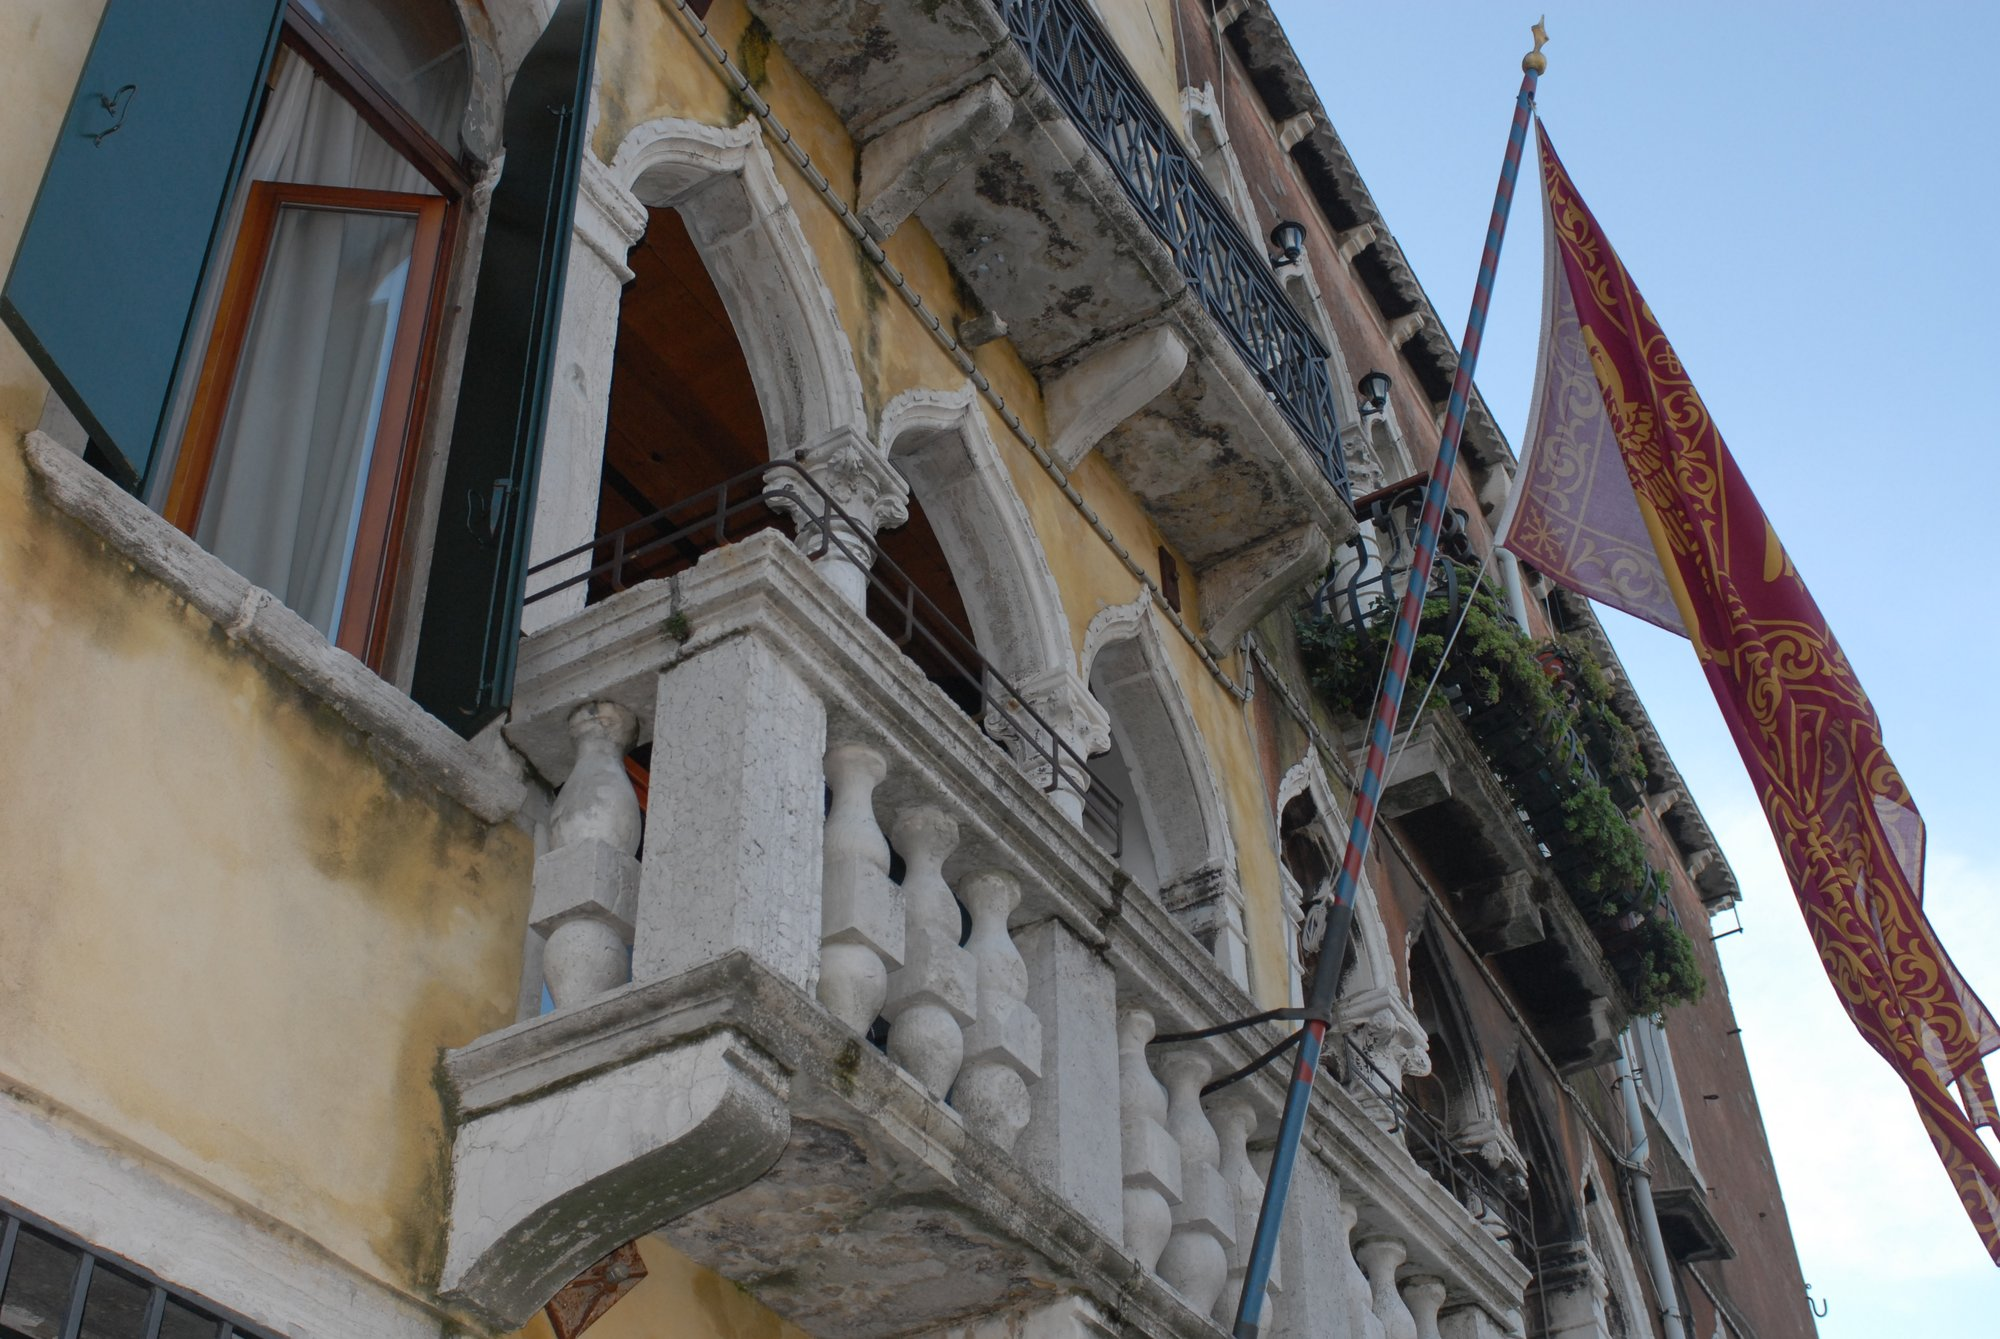 Palazzo-Cendon-with-the-Venetian-flag